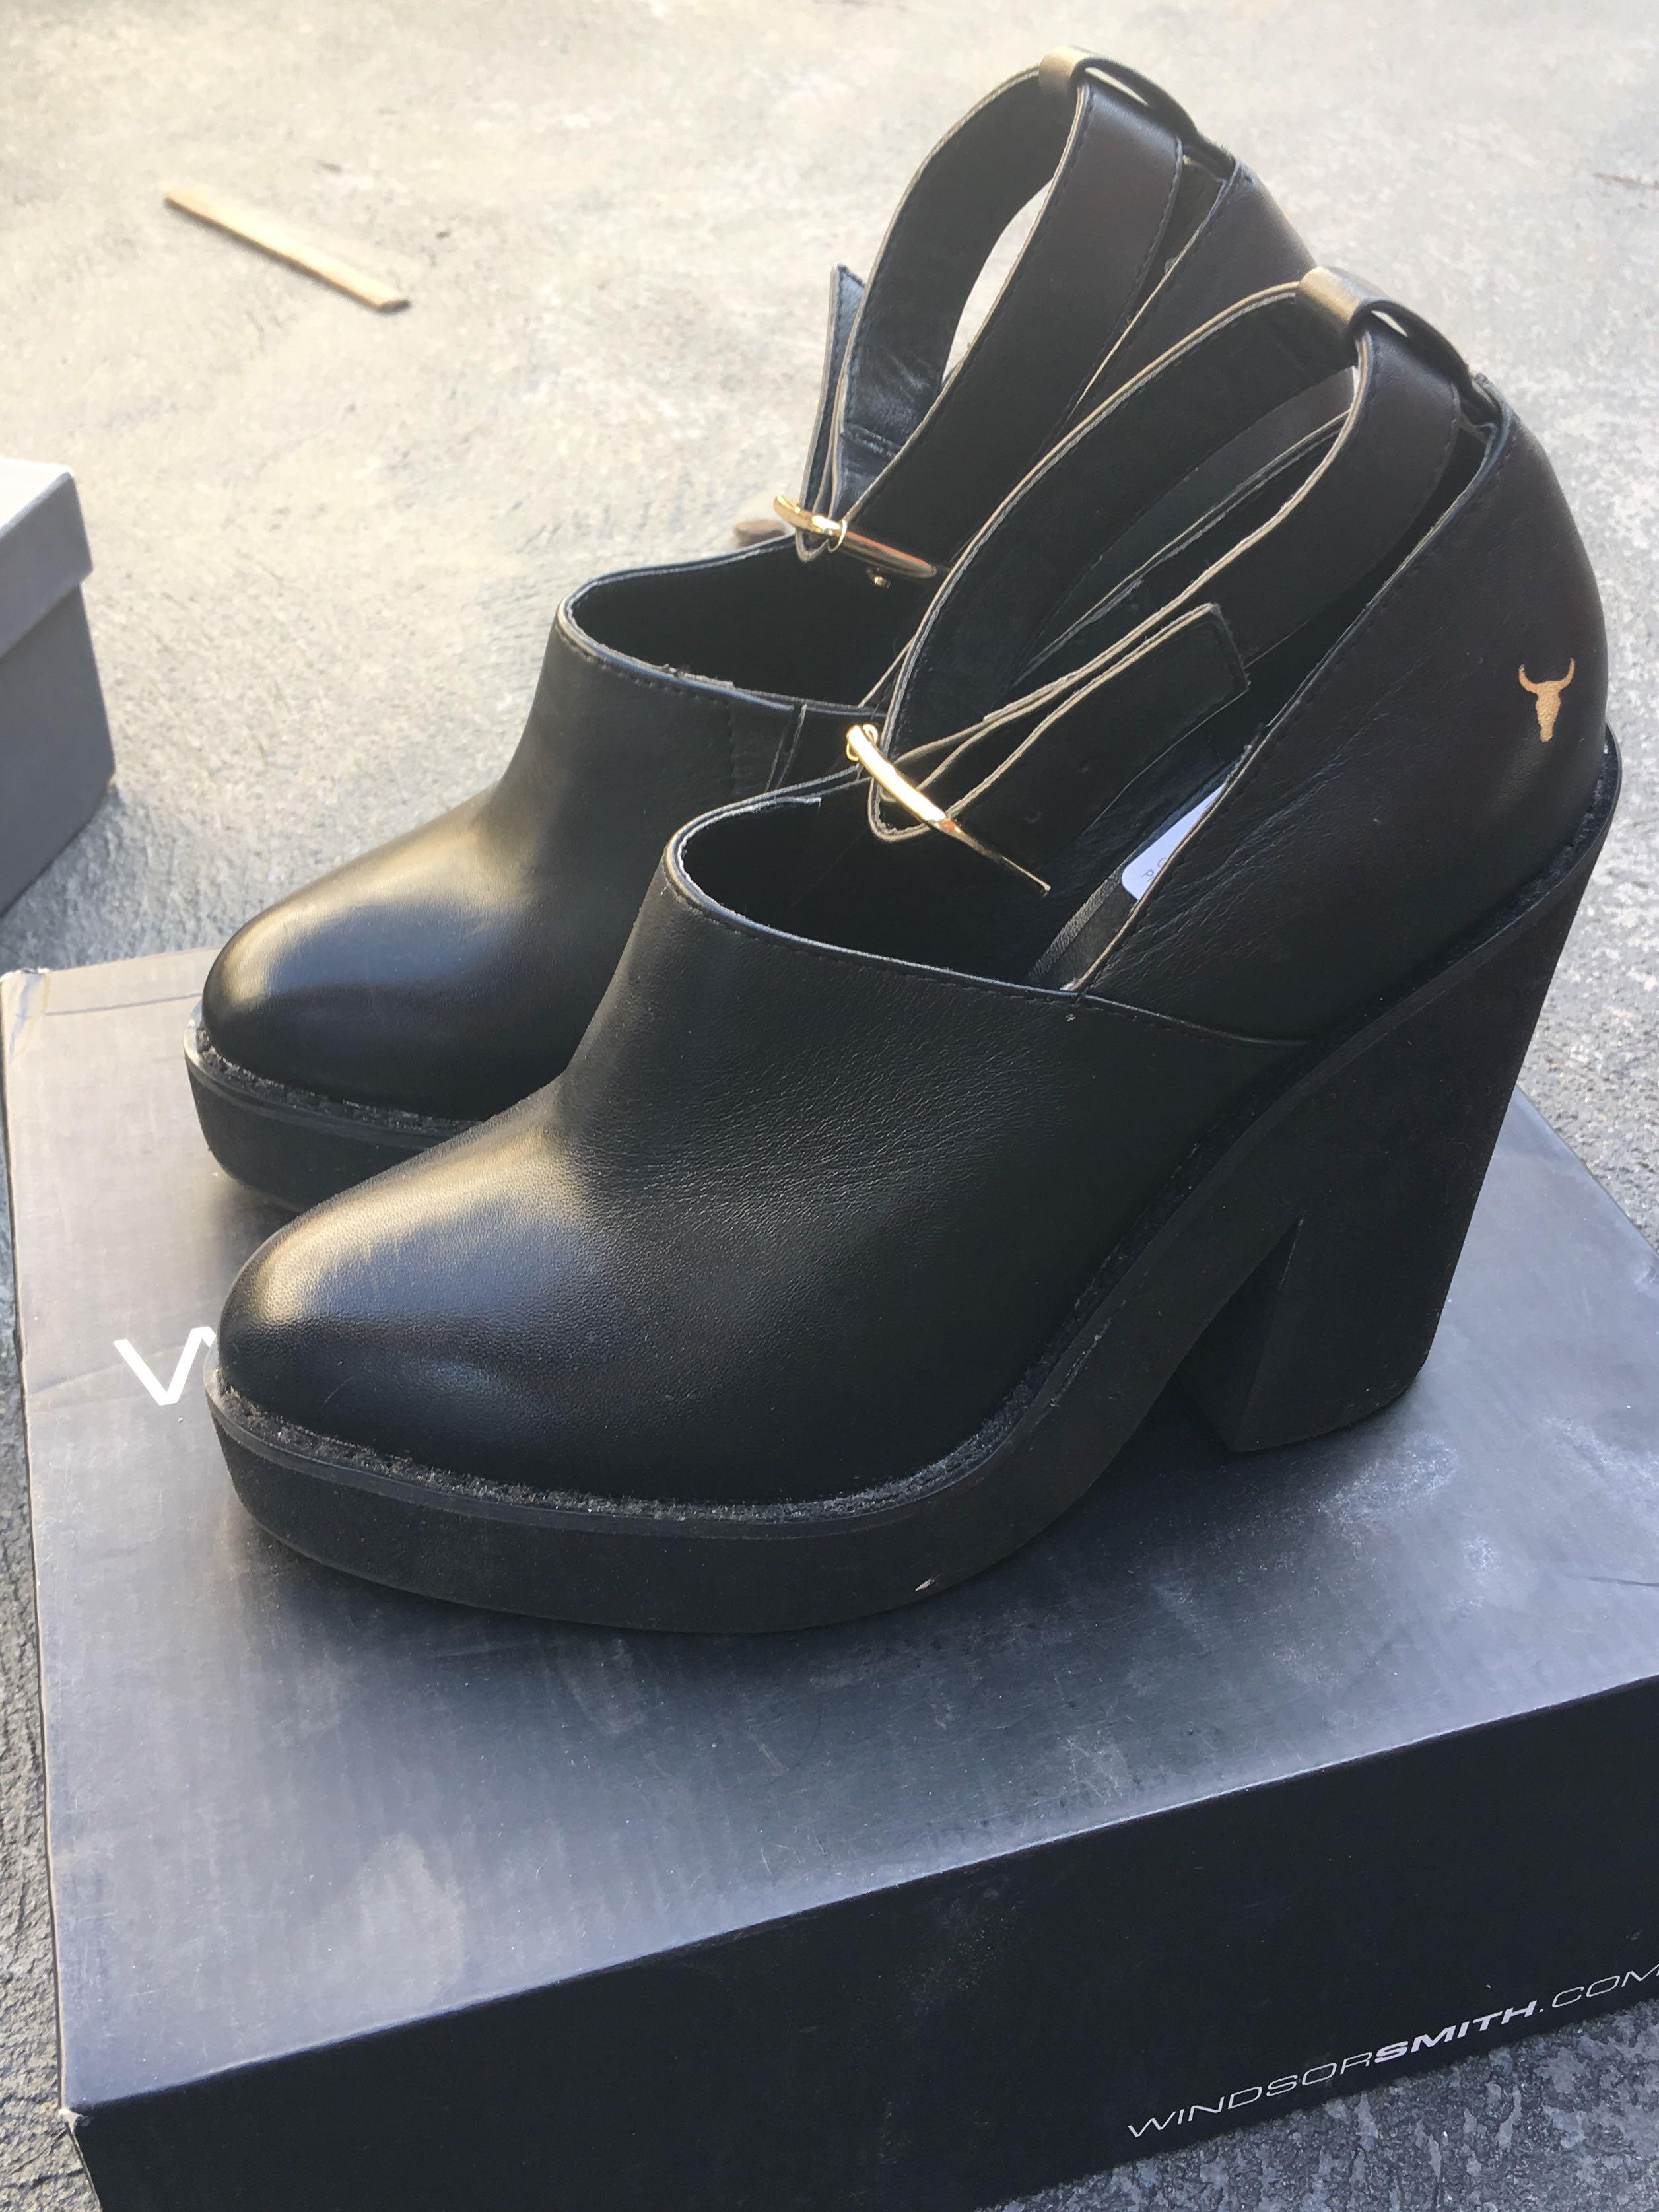 Windsor Smith black boots 5.5 AU